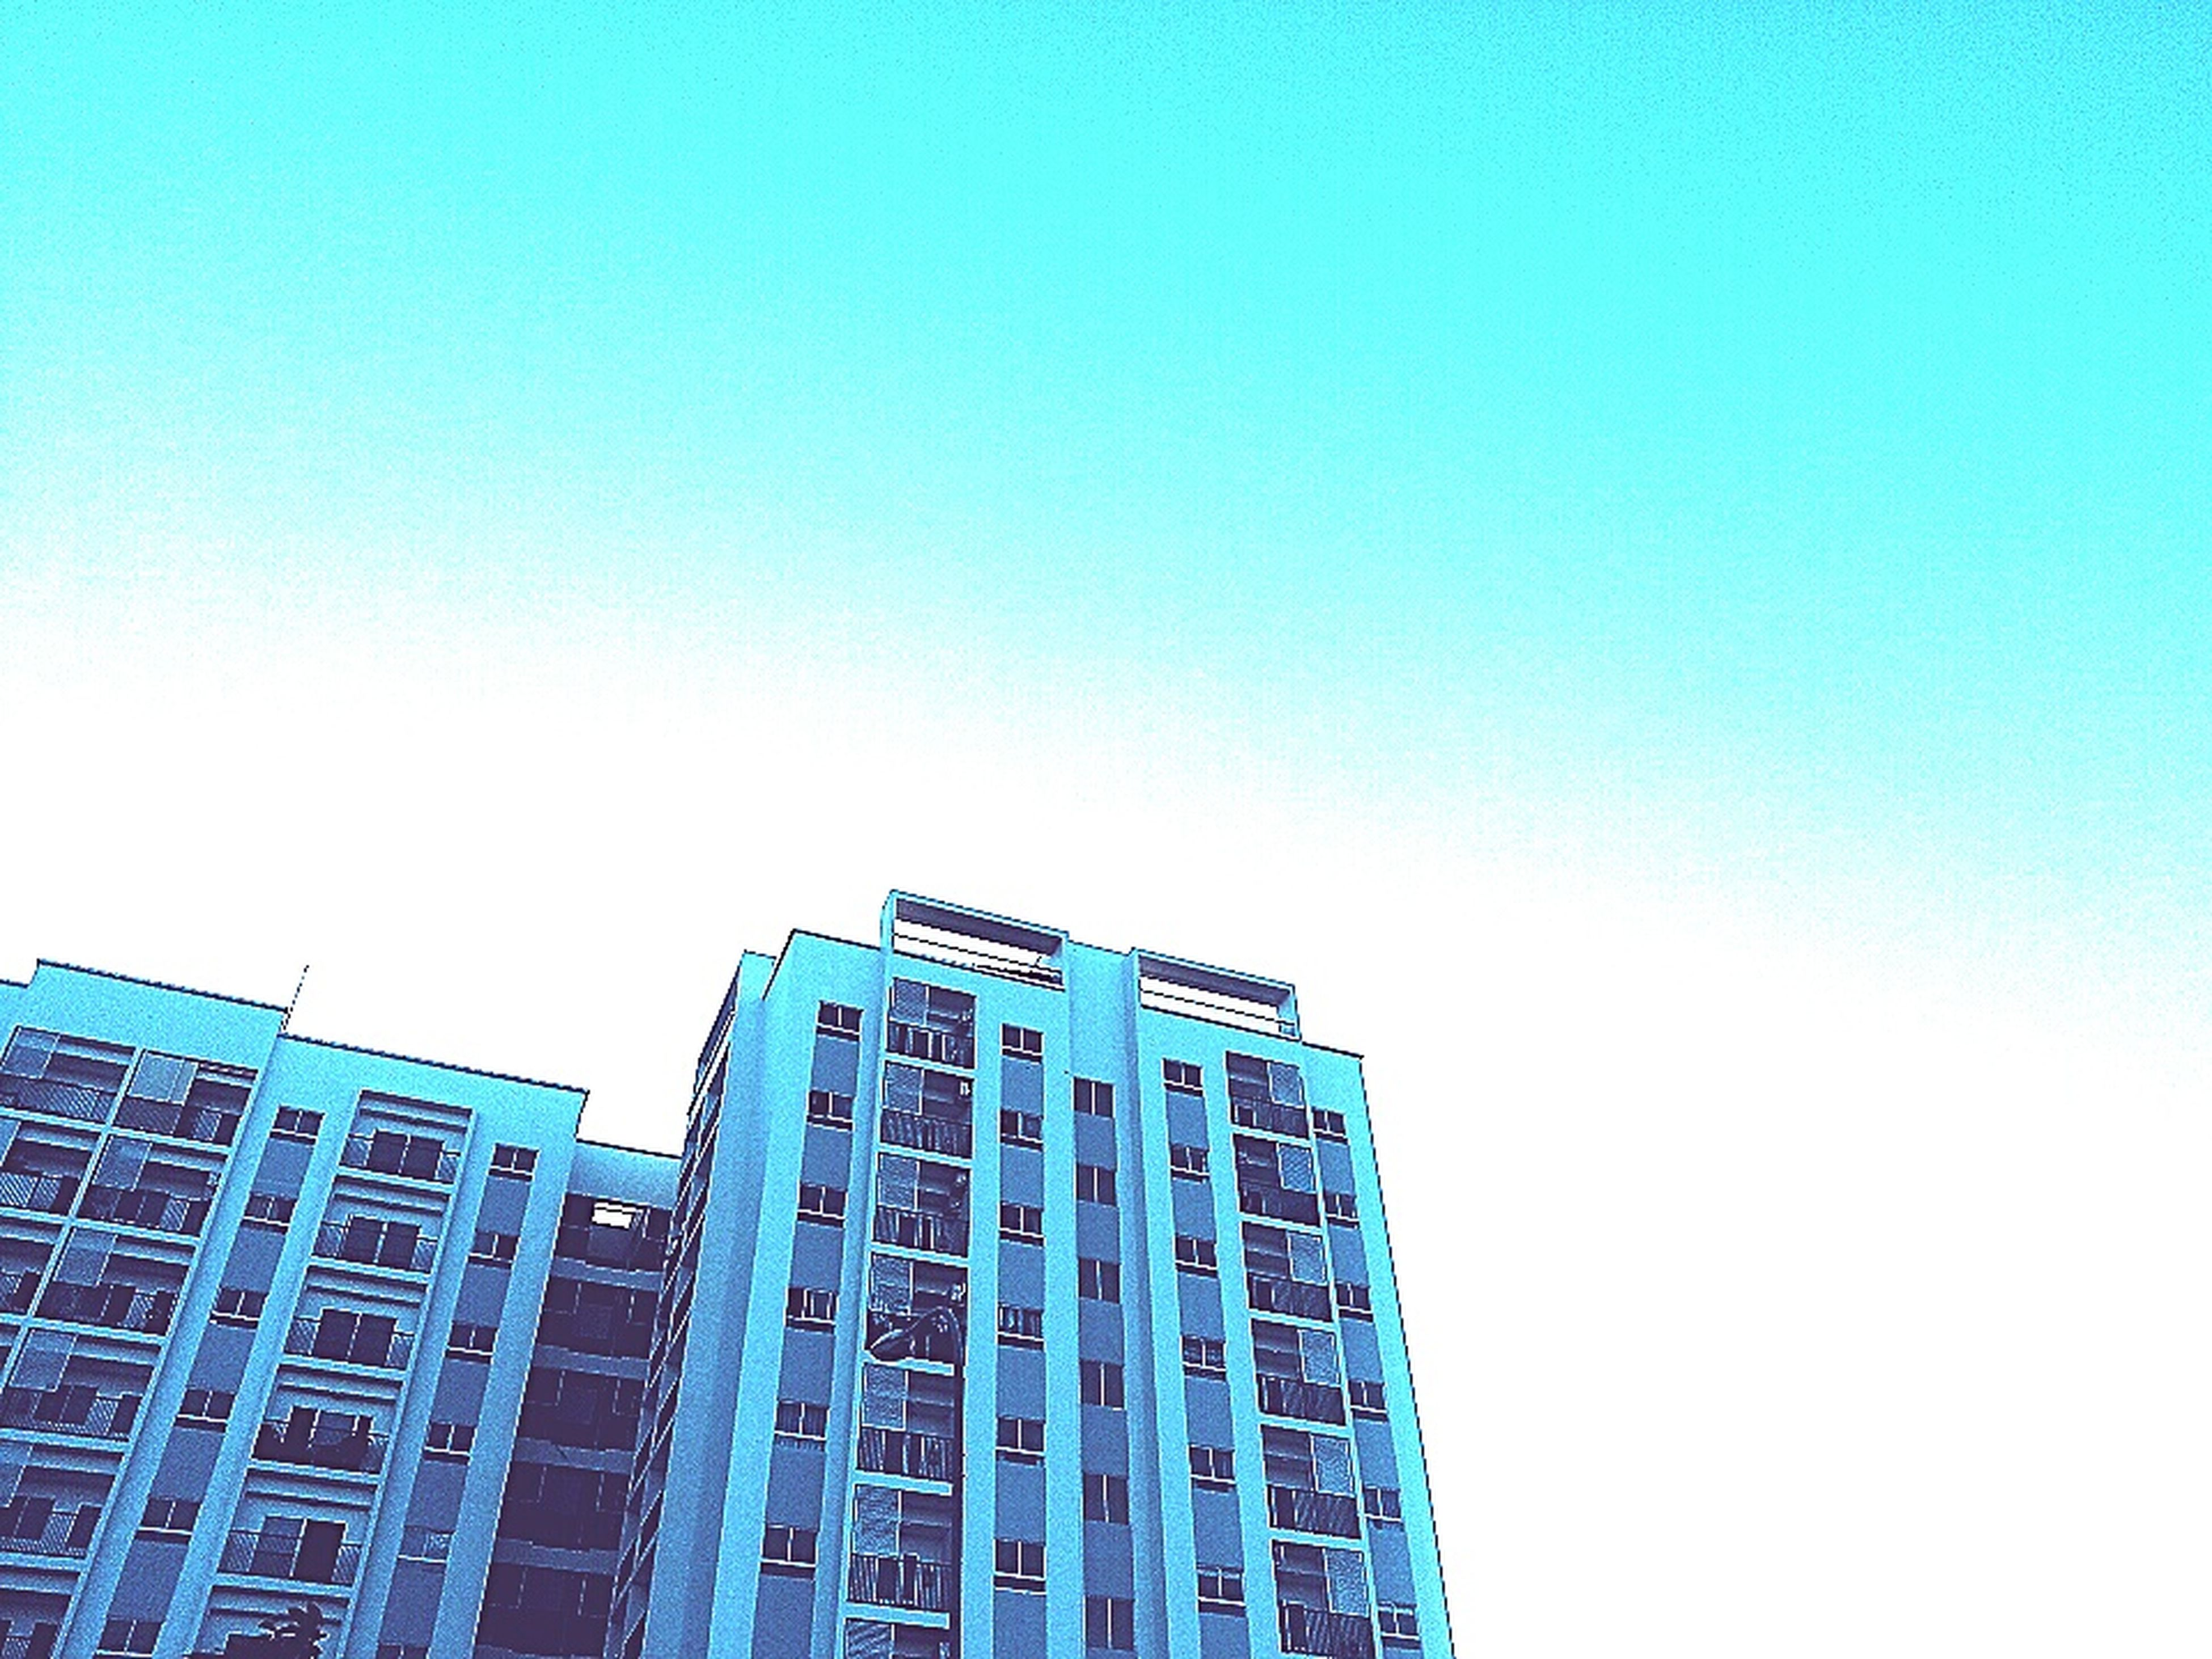 built structure, building exterior, low angle view, clear sky, architecture, no people, outdoors, sky, day